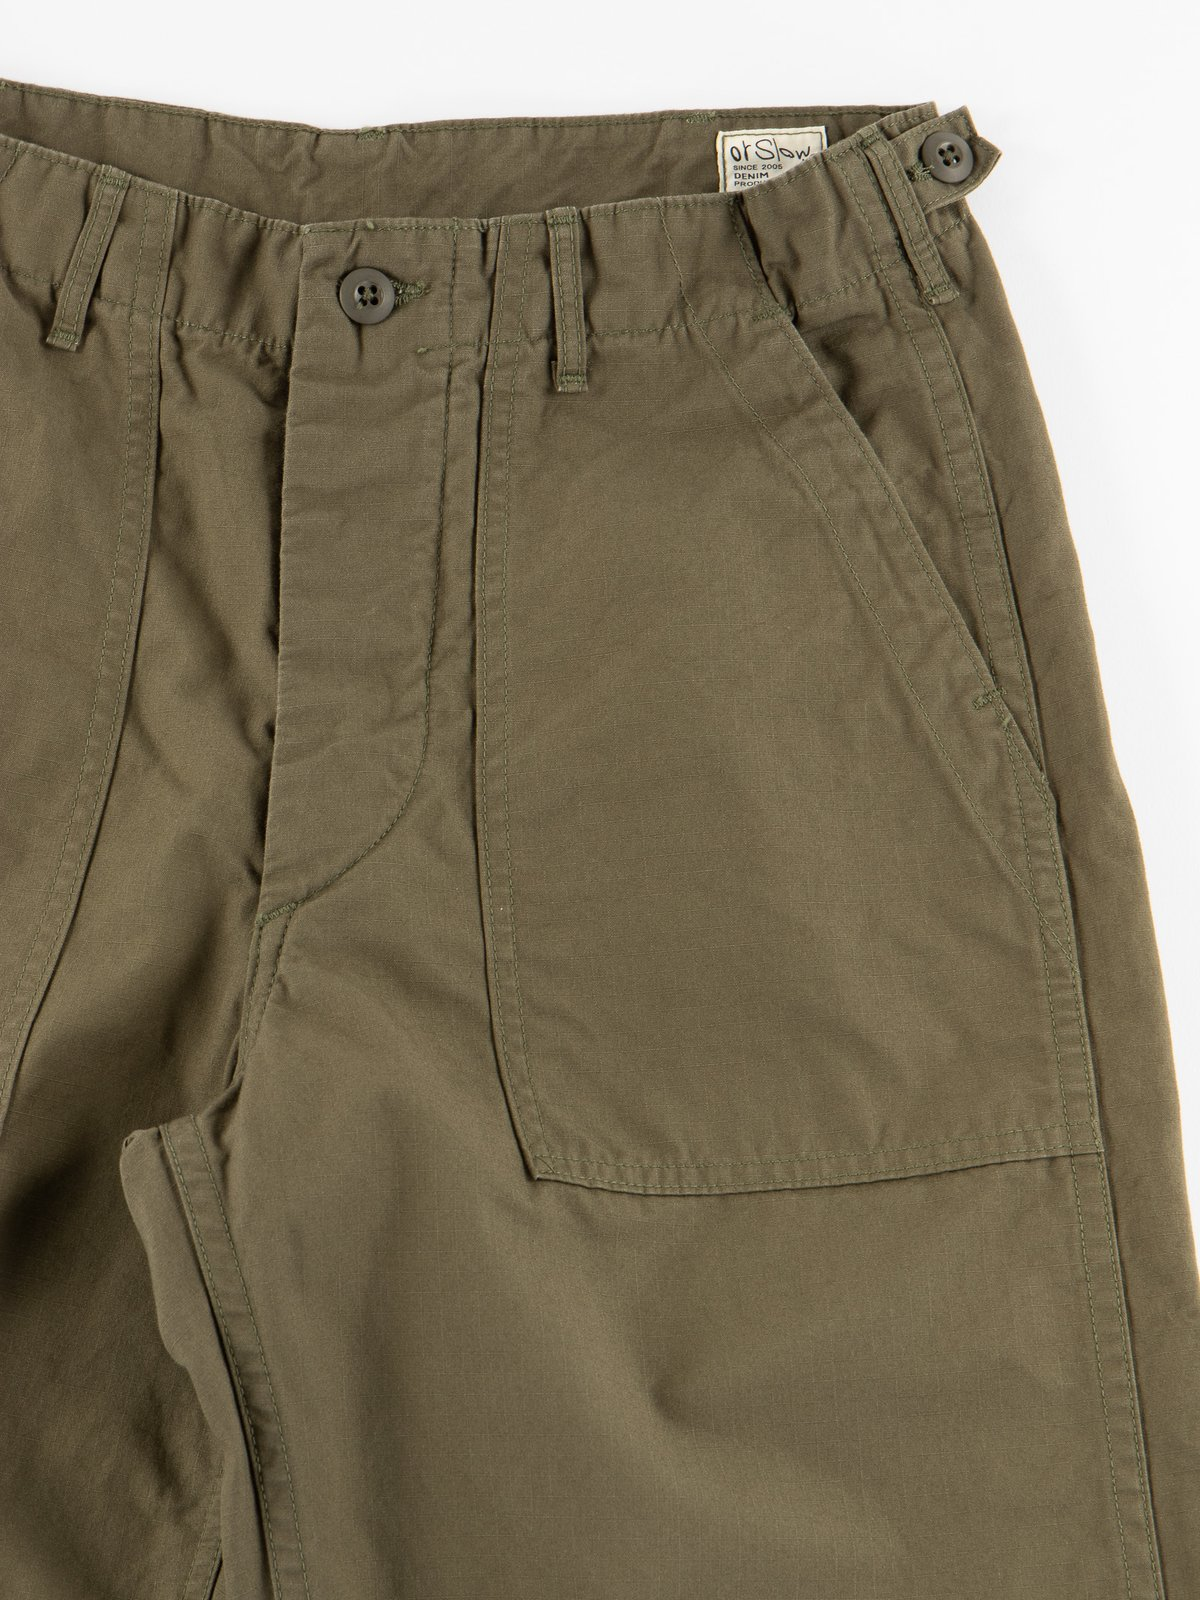 Army Green Ripstop Regular Fit US Army Fatigue Pant - Image 5